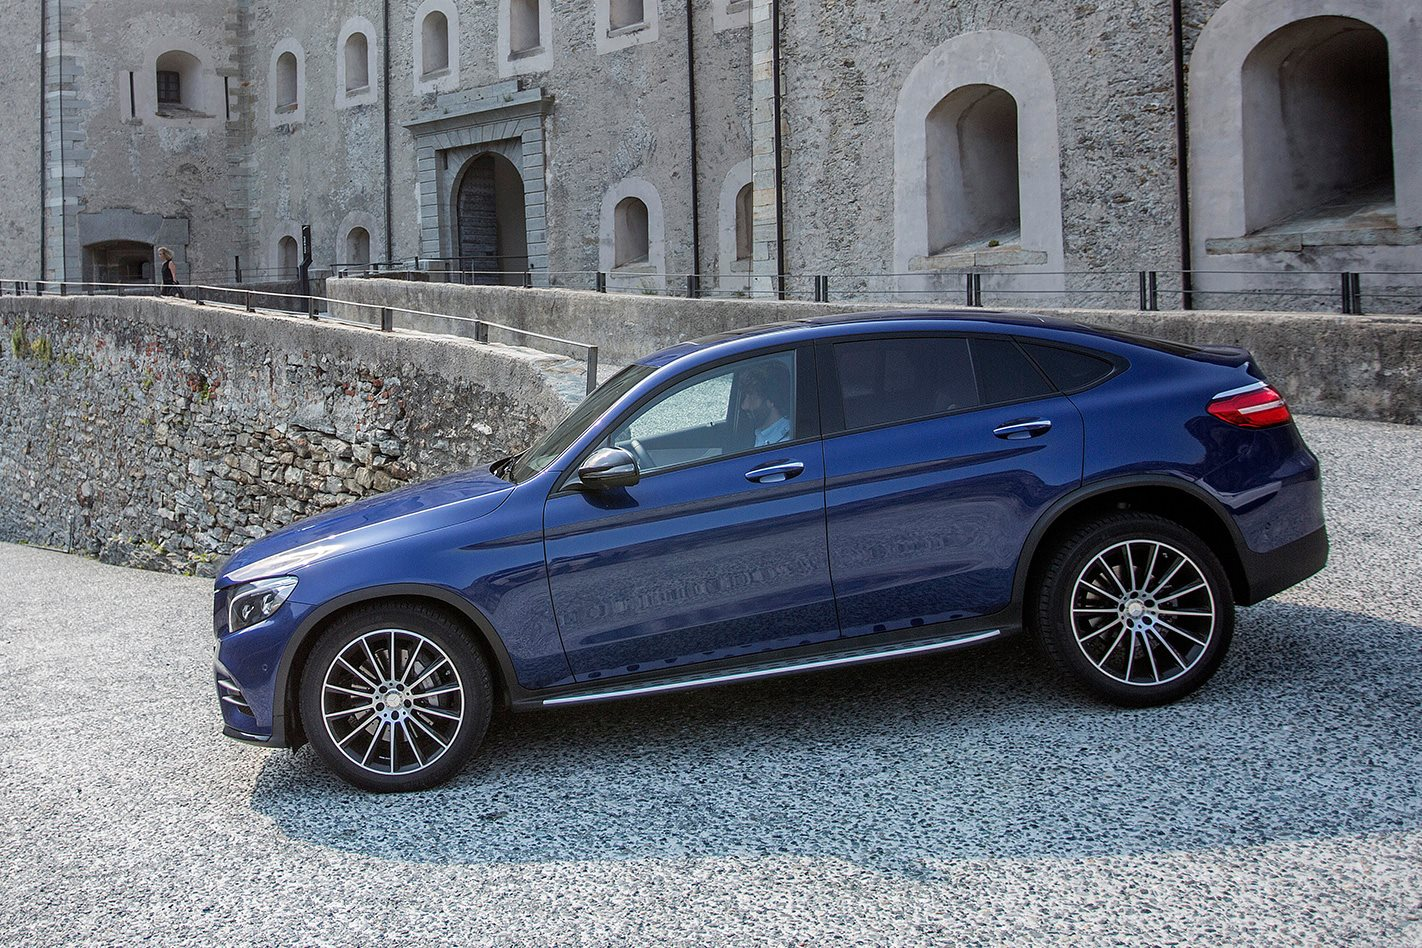 Mercedes benz glc coupe priced with big premium over wagon for Mercedes benz big car